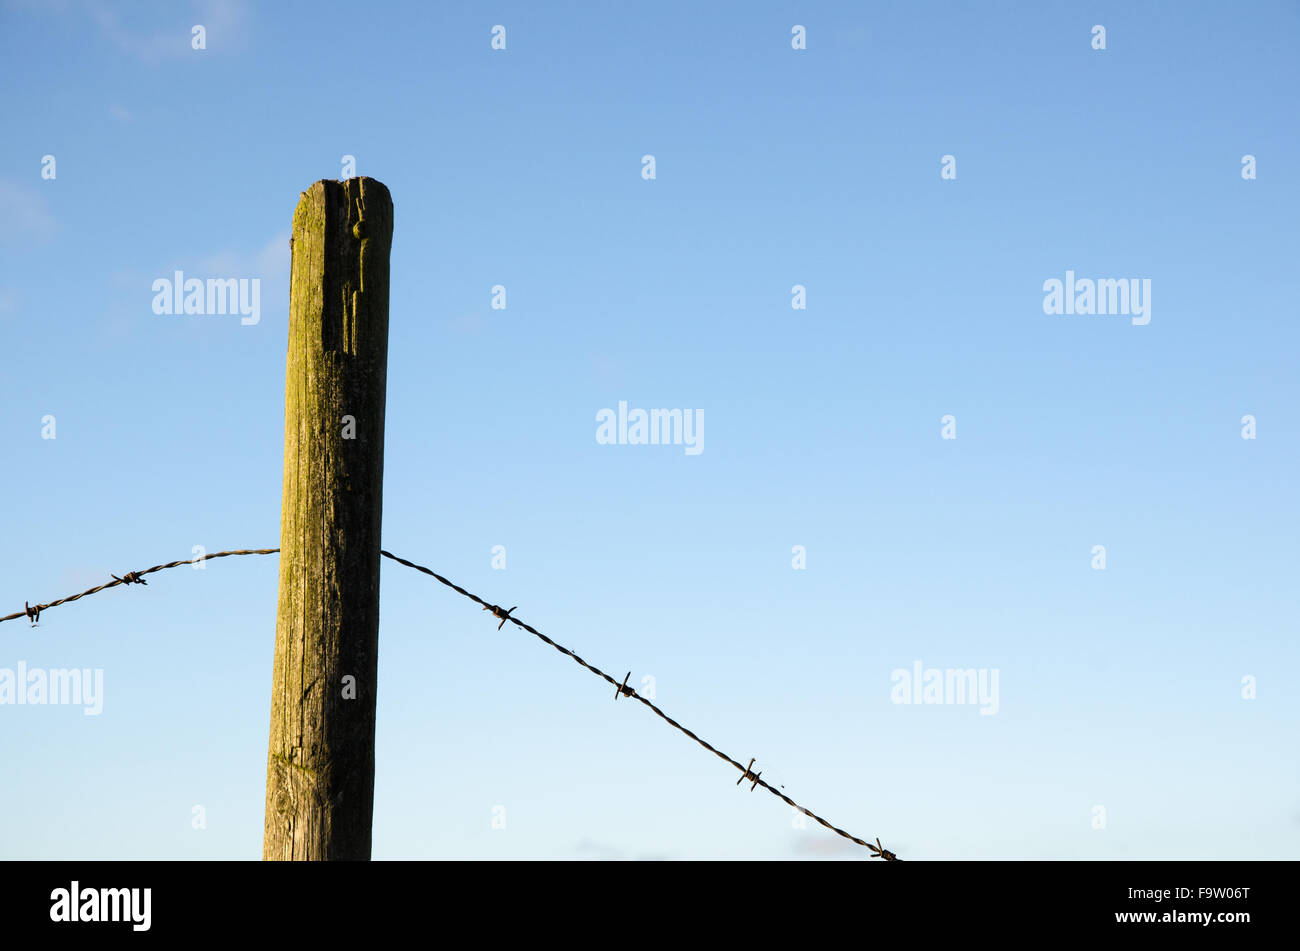 Fence post with old barb wire at blue sky - Stock Image